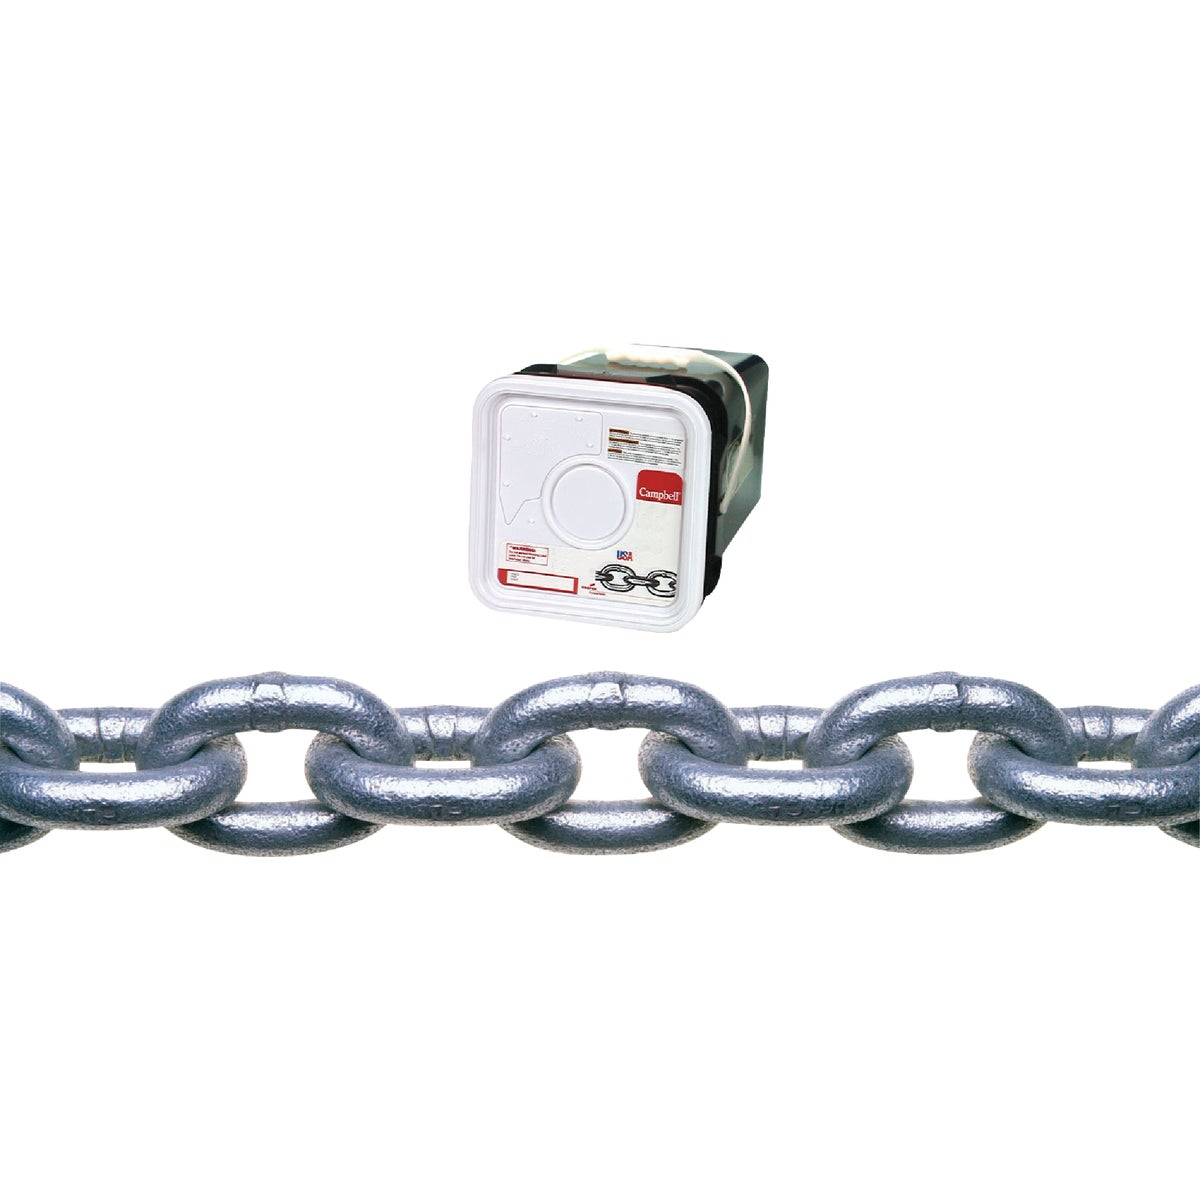 "75' 5/16"" G30 GALV CHAIN - 0143536 by Cooper Campbell Apex"